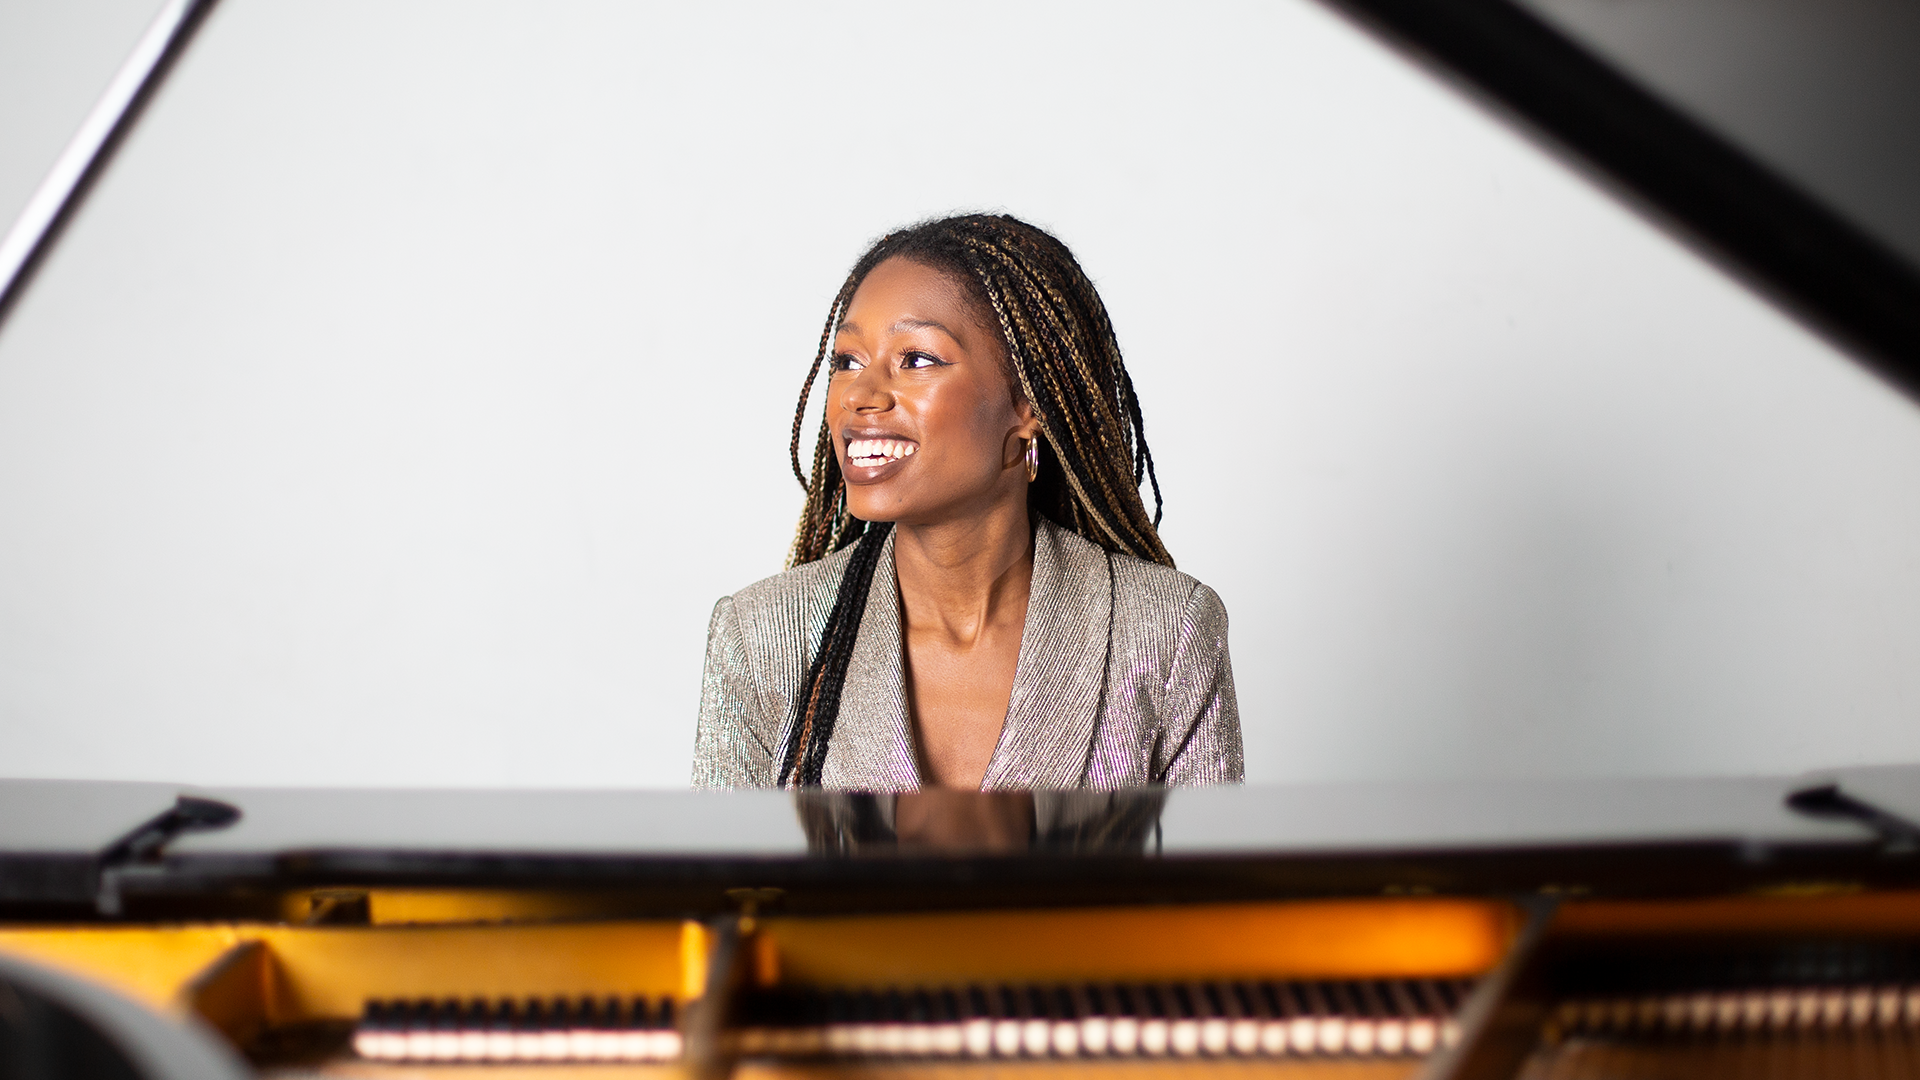 Isata Kanneh-Mason presents a portrait of the life and music of Clara Schumann